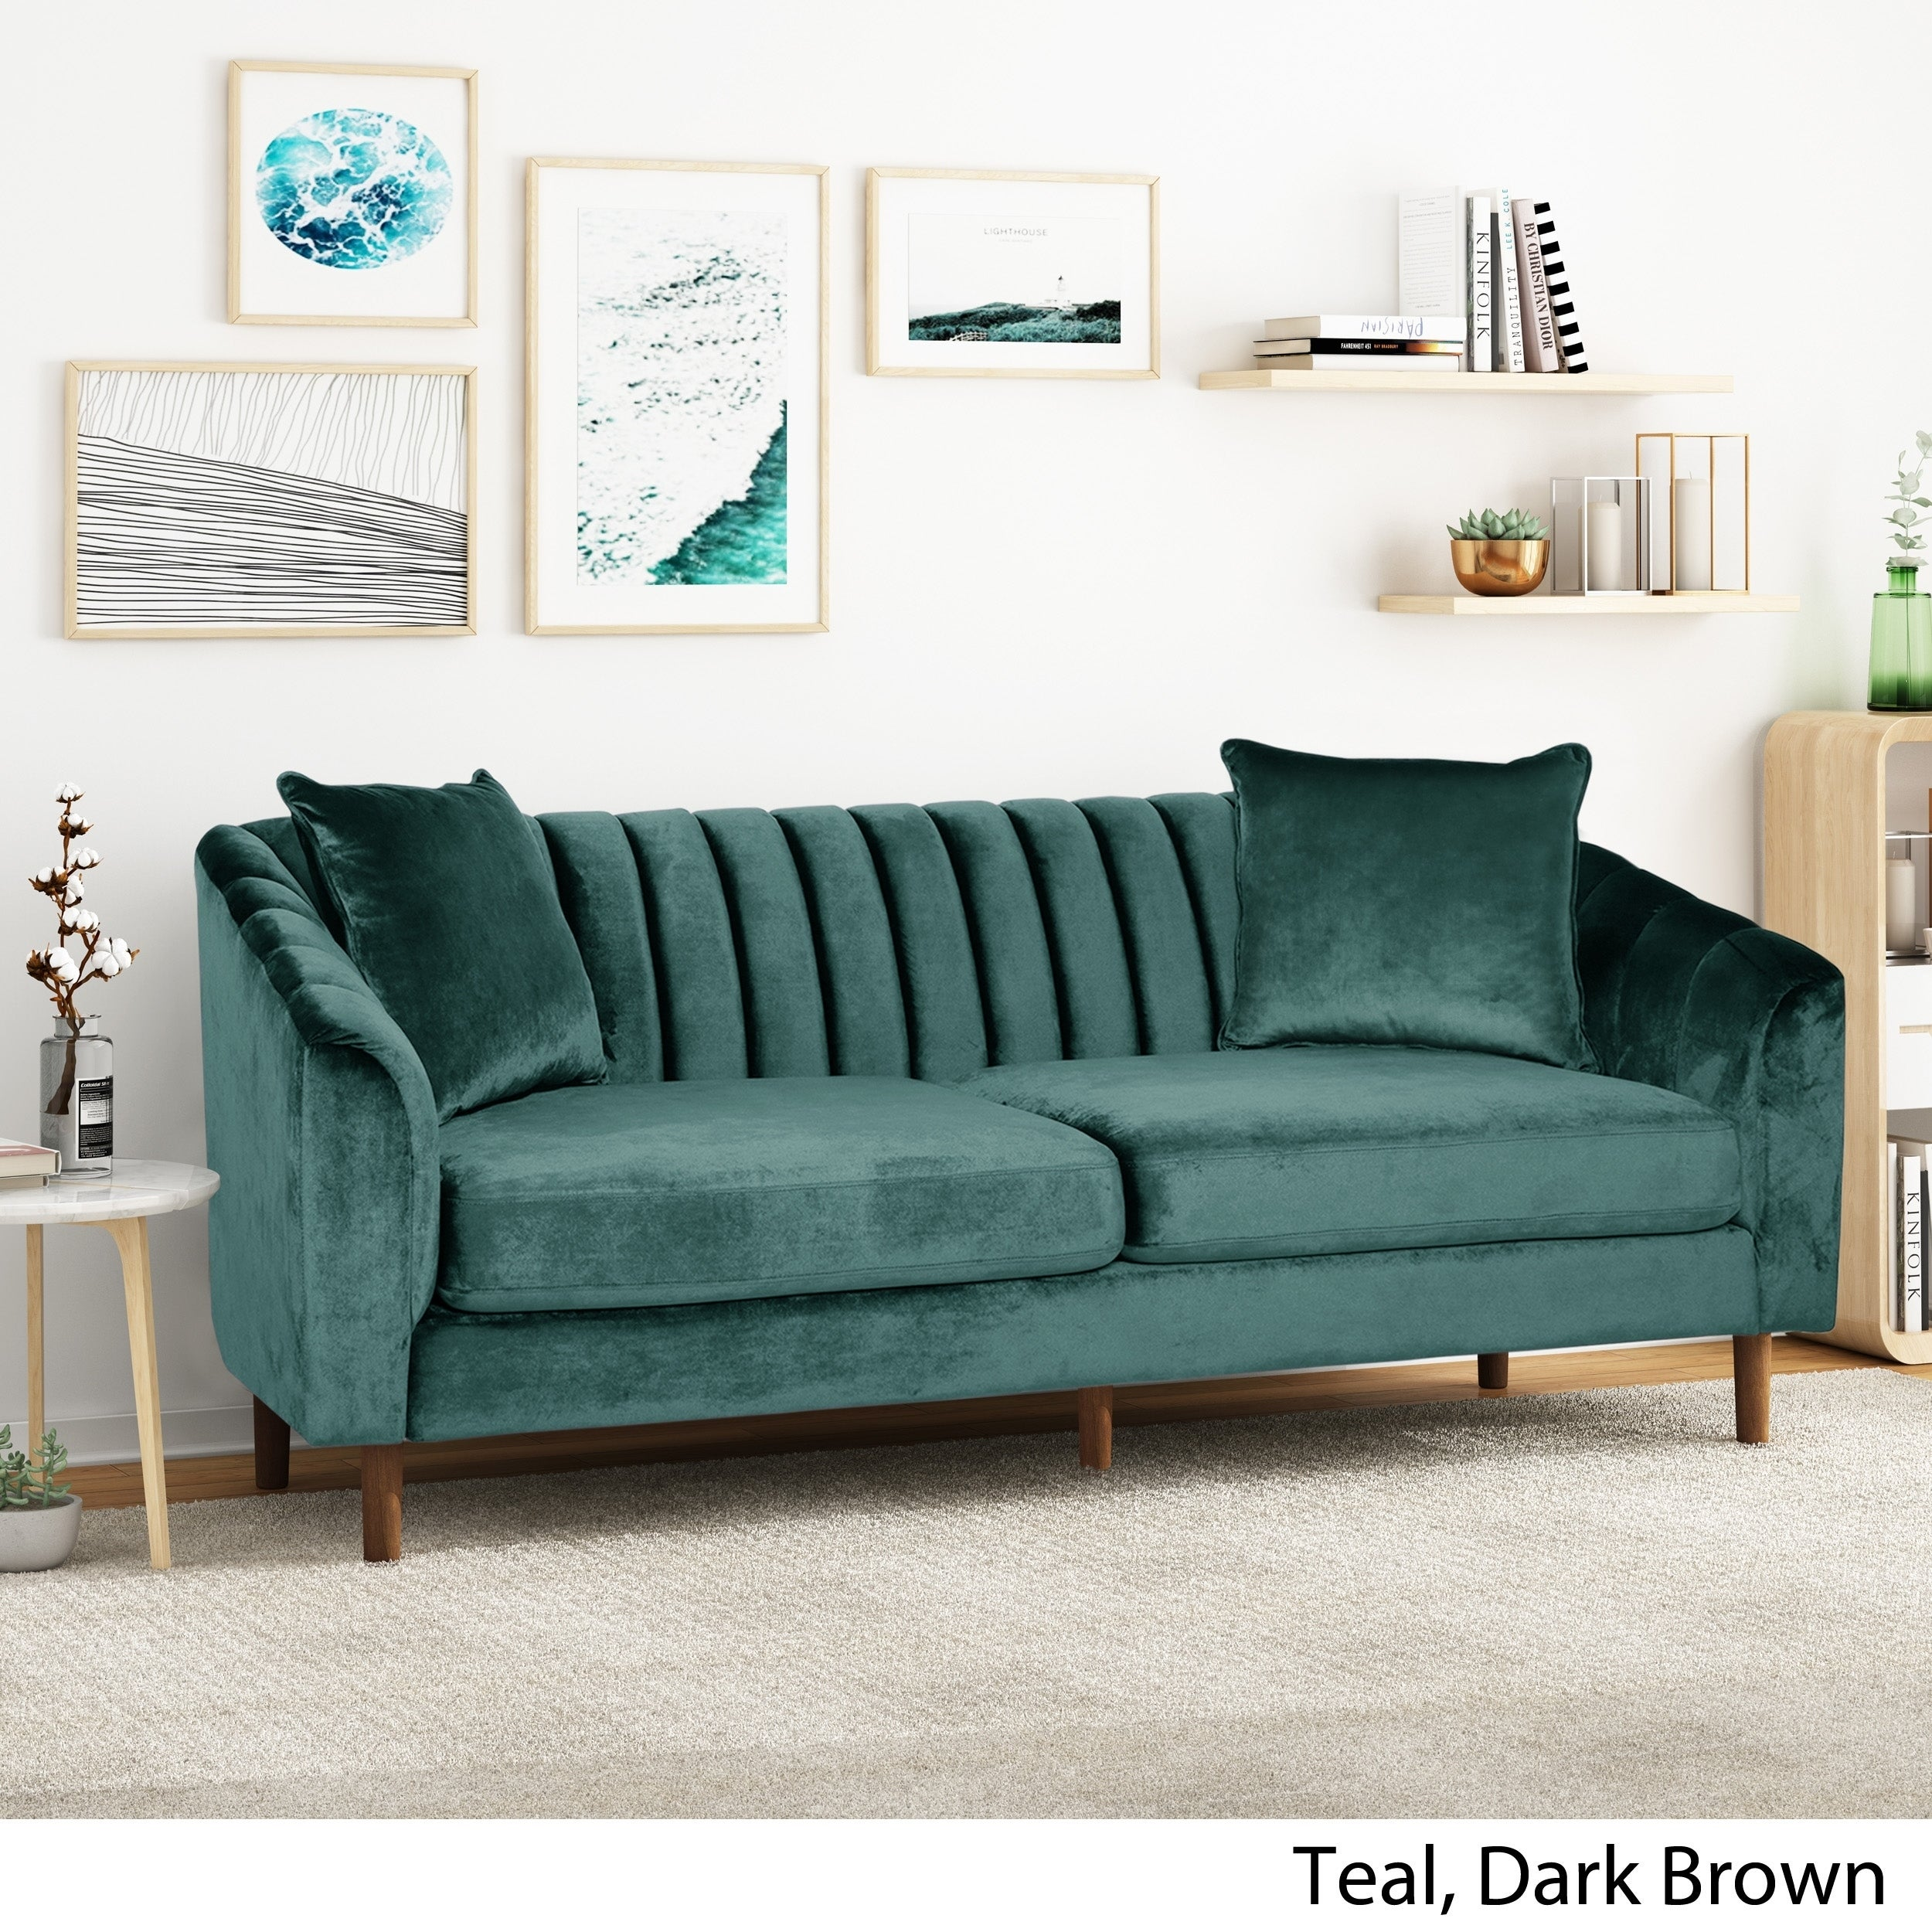 Shop Black Friday Deals On Ansonia 3 Seat Contemporary Velvet Sofa By Christopher Knight Home Overstock 28813612